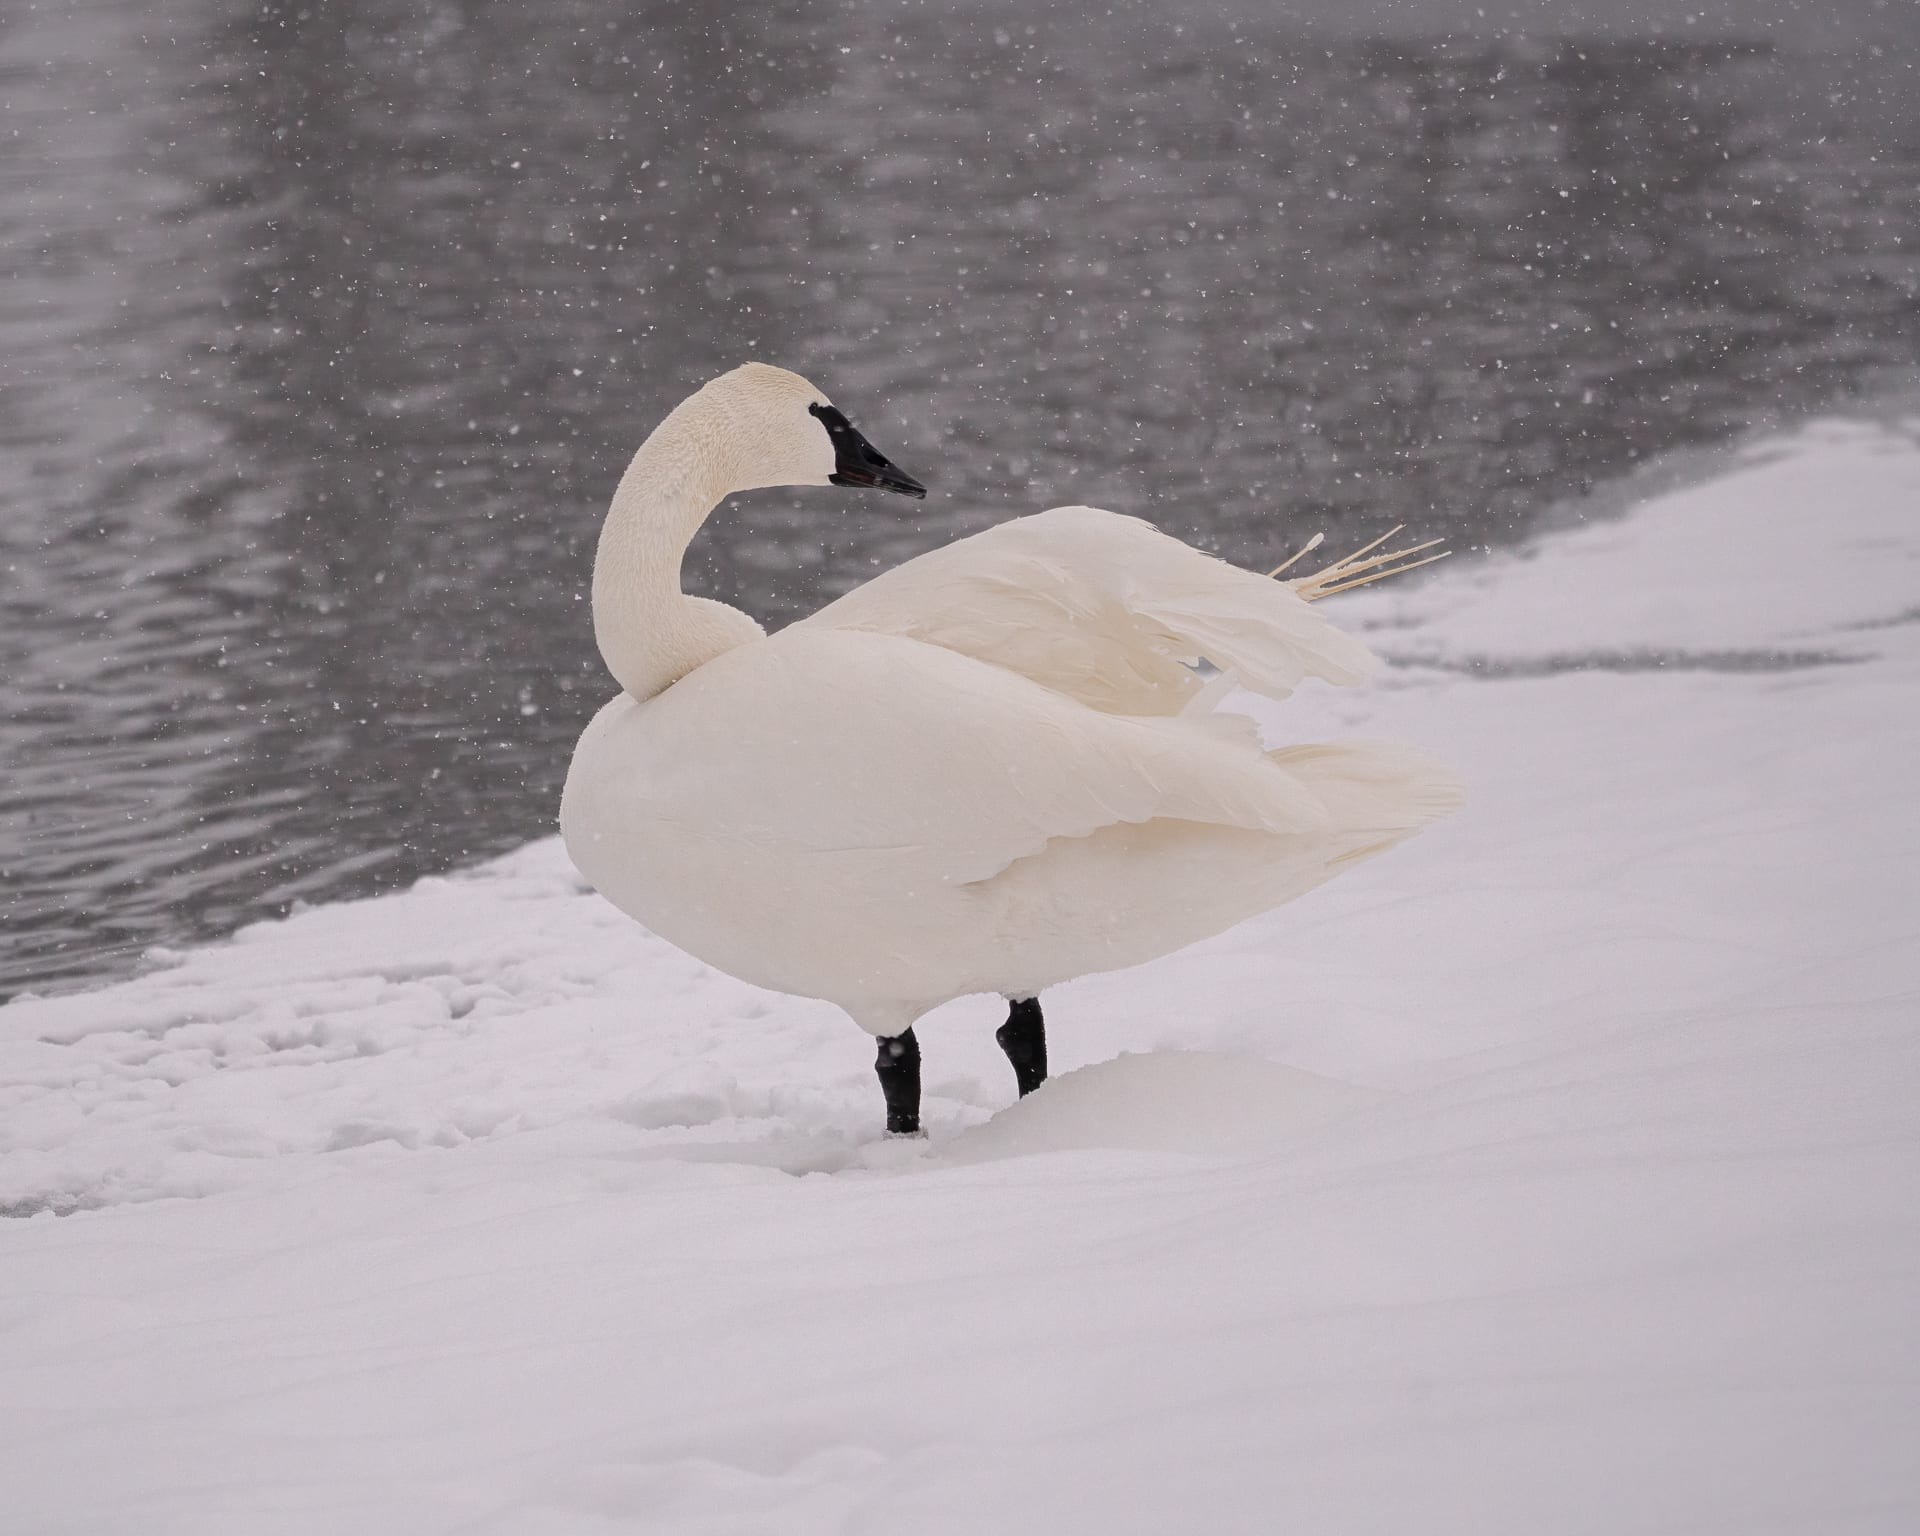 Snowflakes fall on a trumpeter swan.